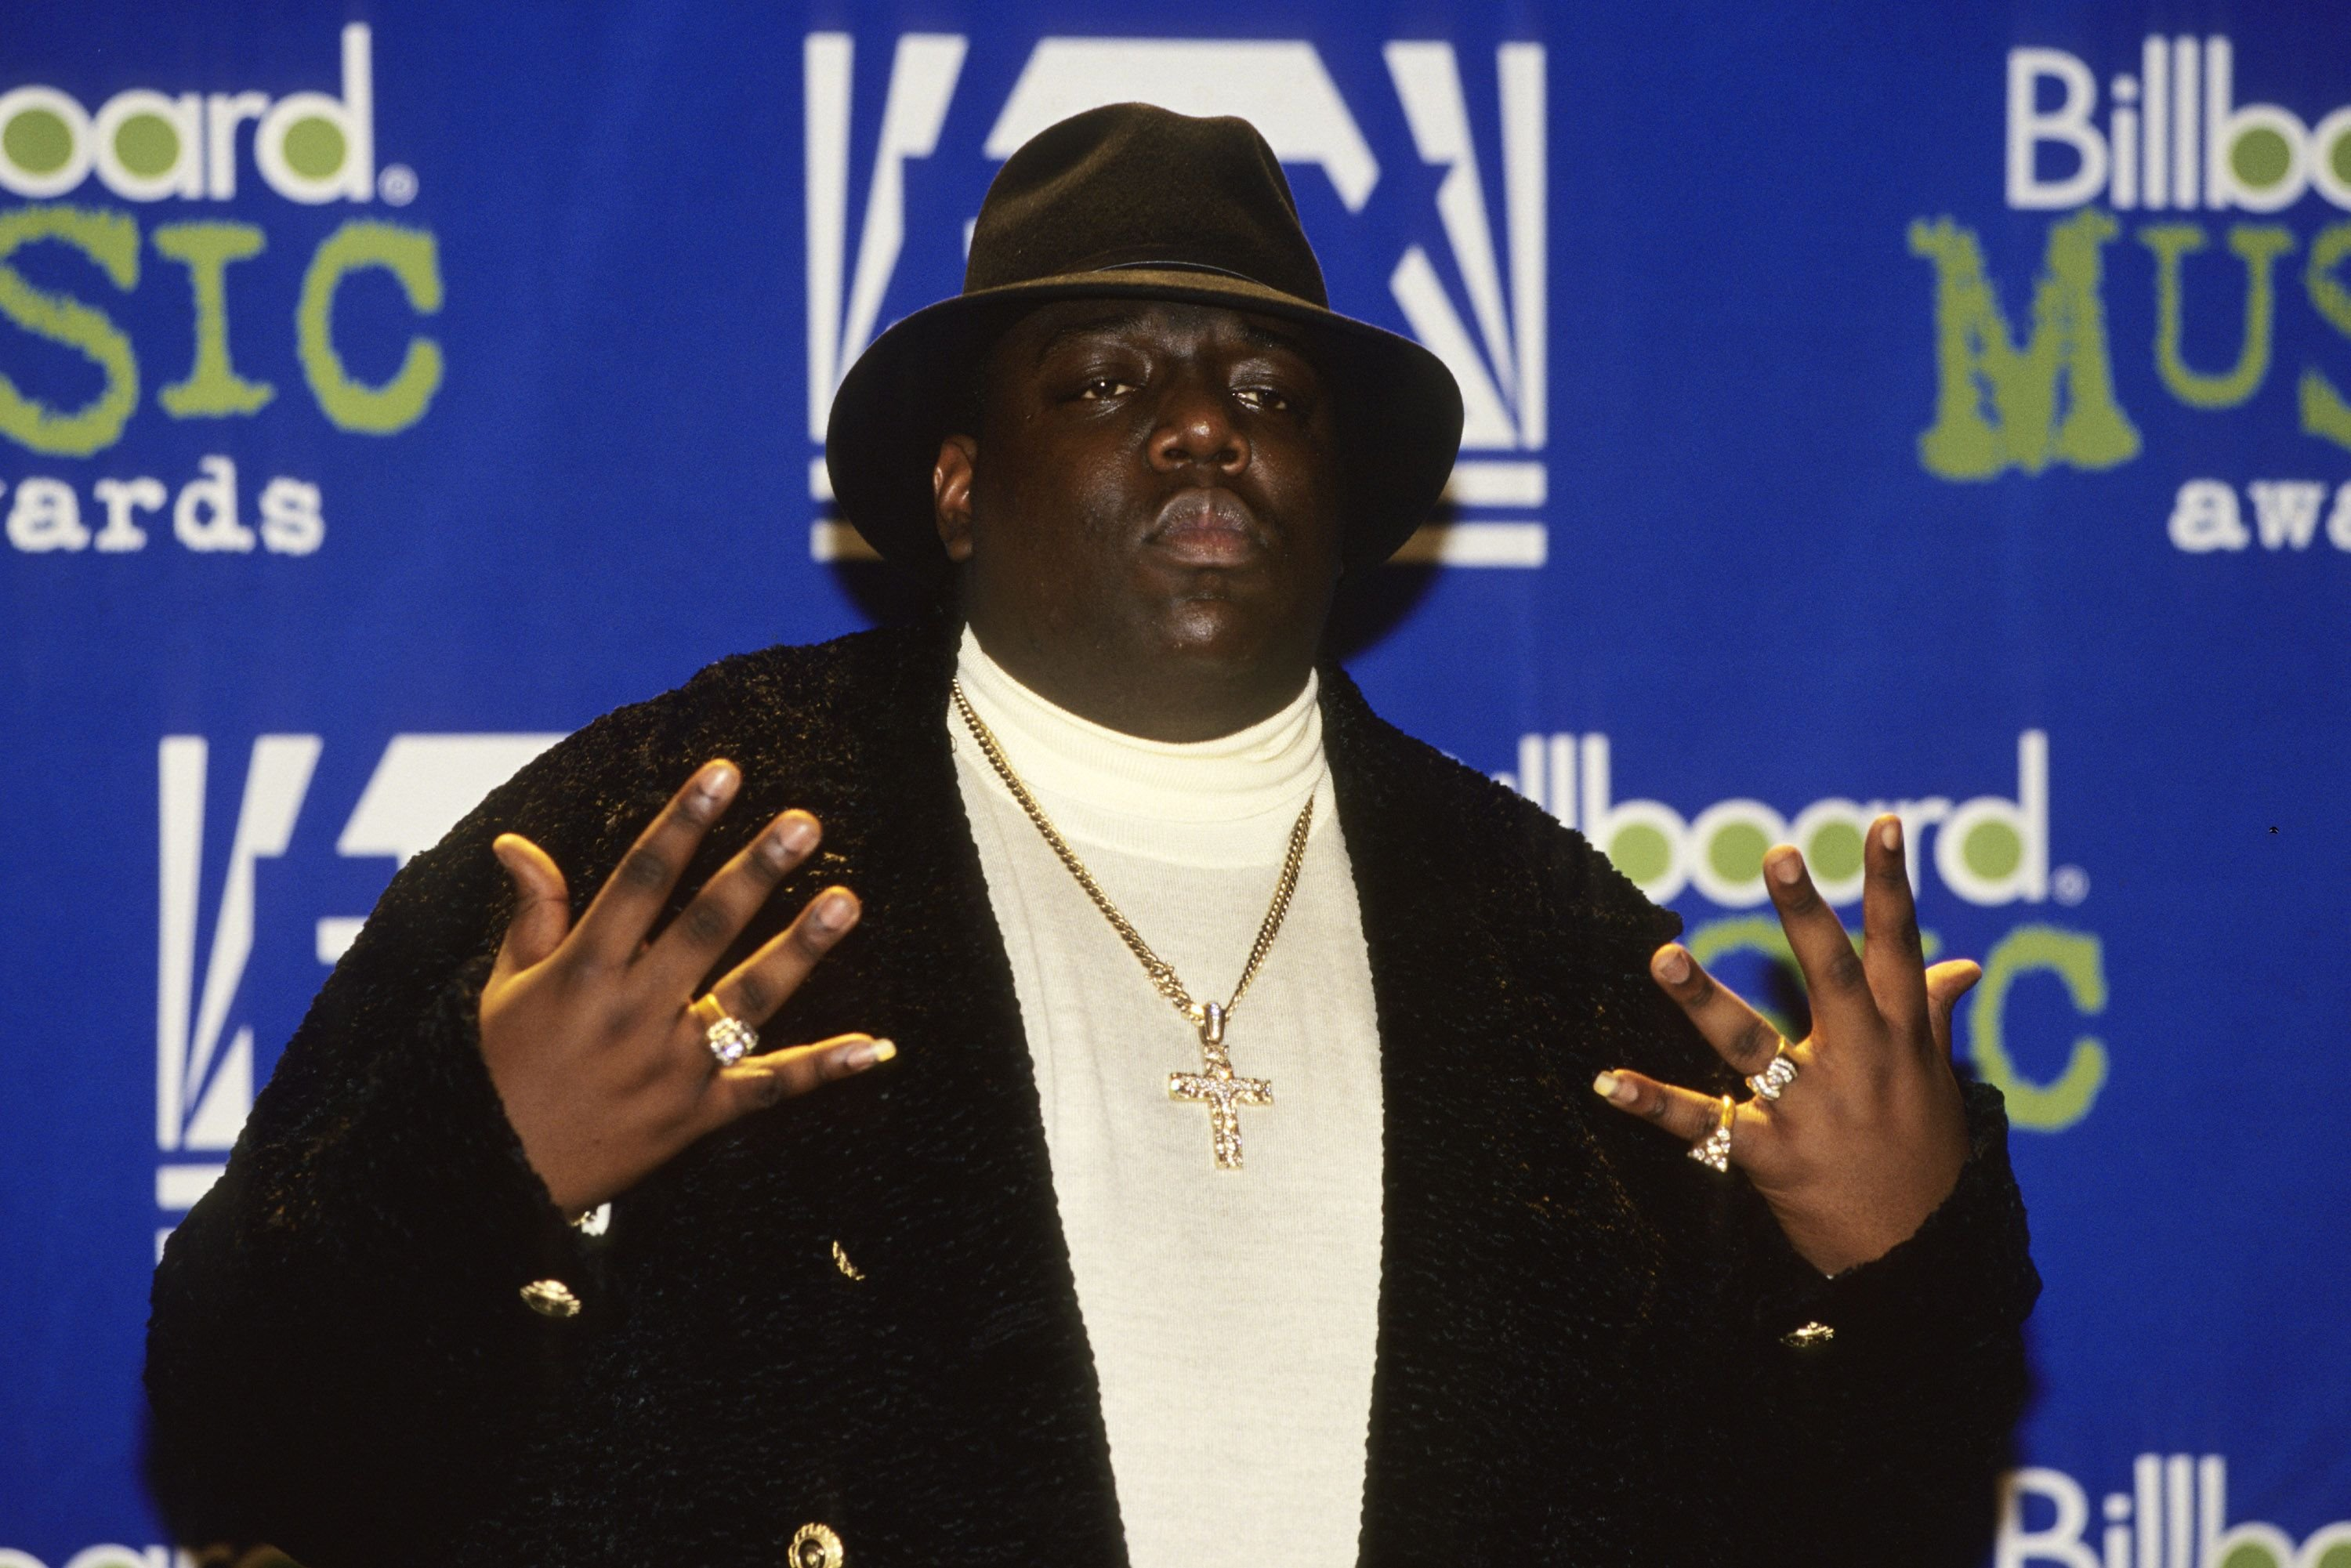 Notorious B.I.G. at the 1995 Billboard Music Awards in New York on December 6, 1996 | Photo: Getty Images